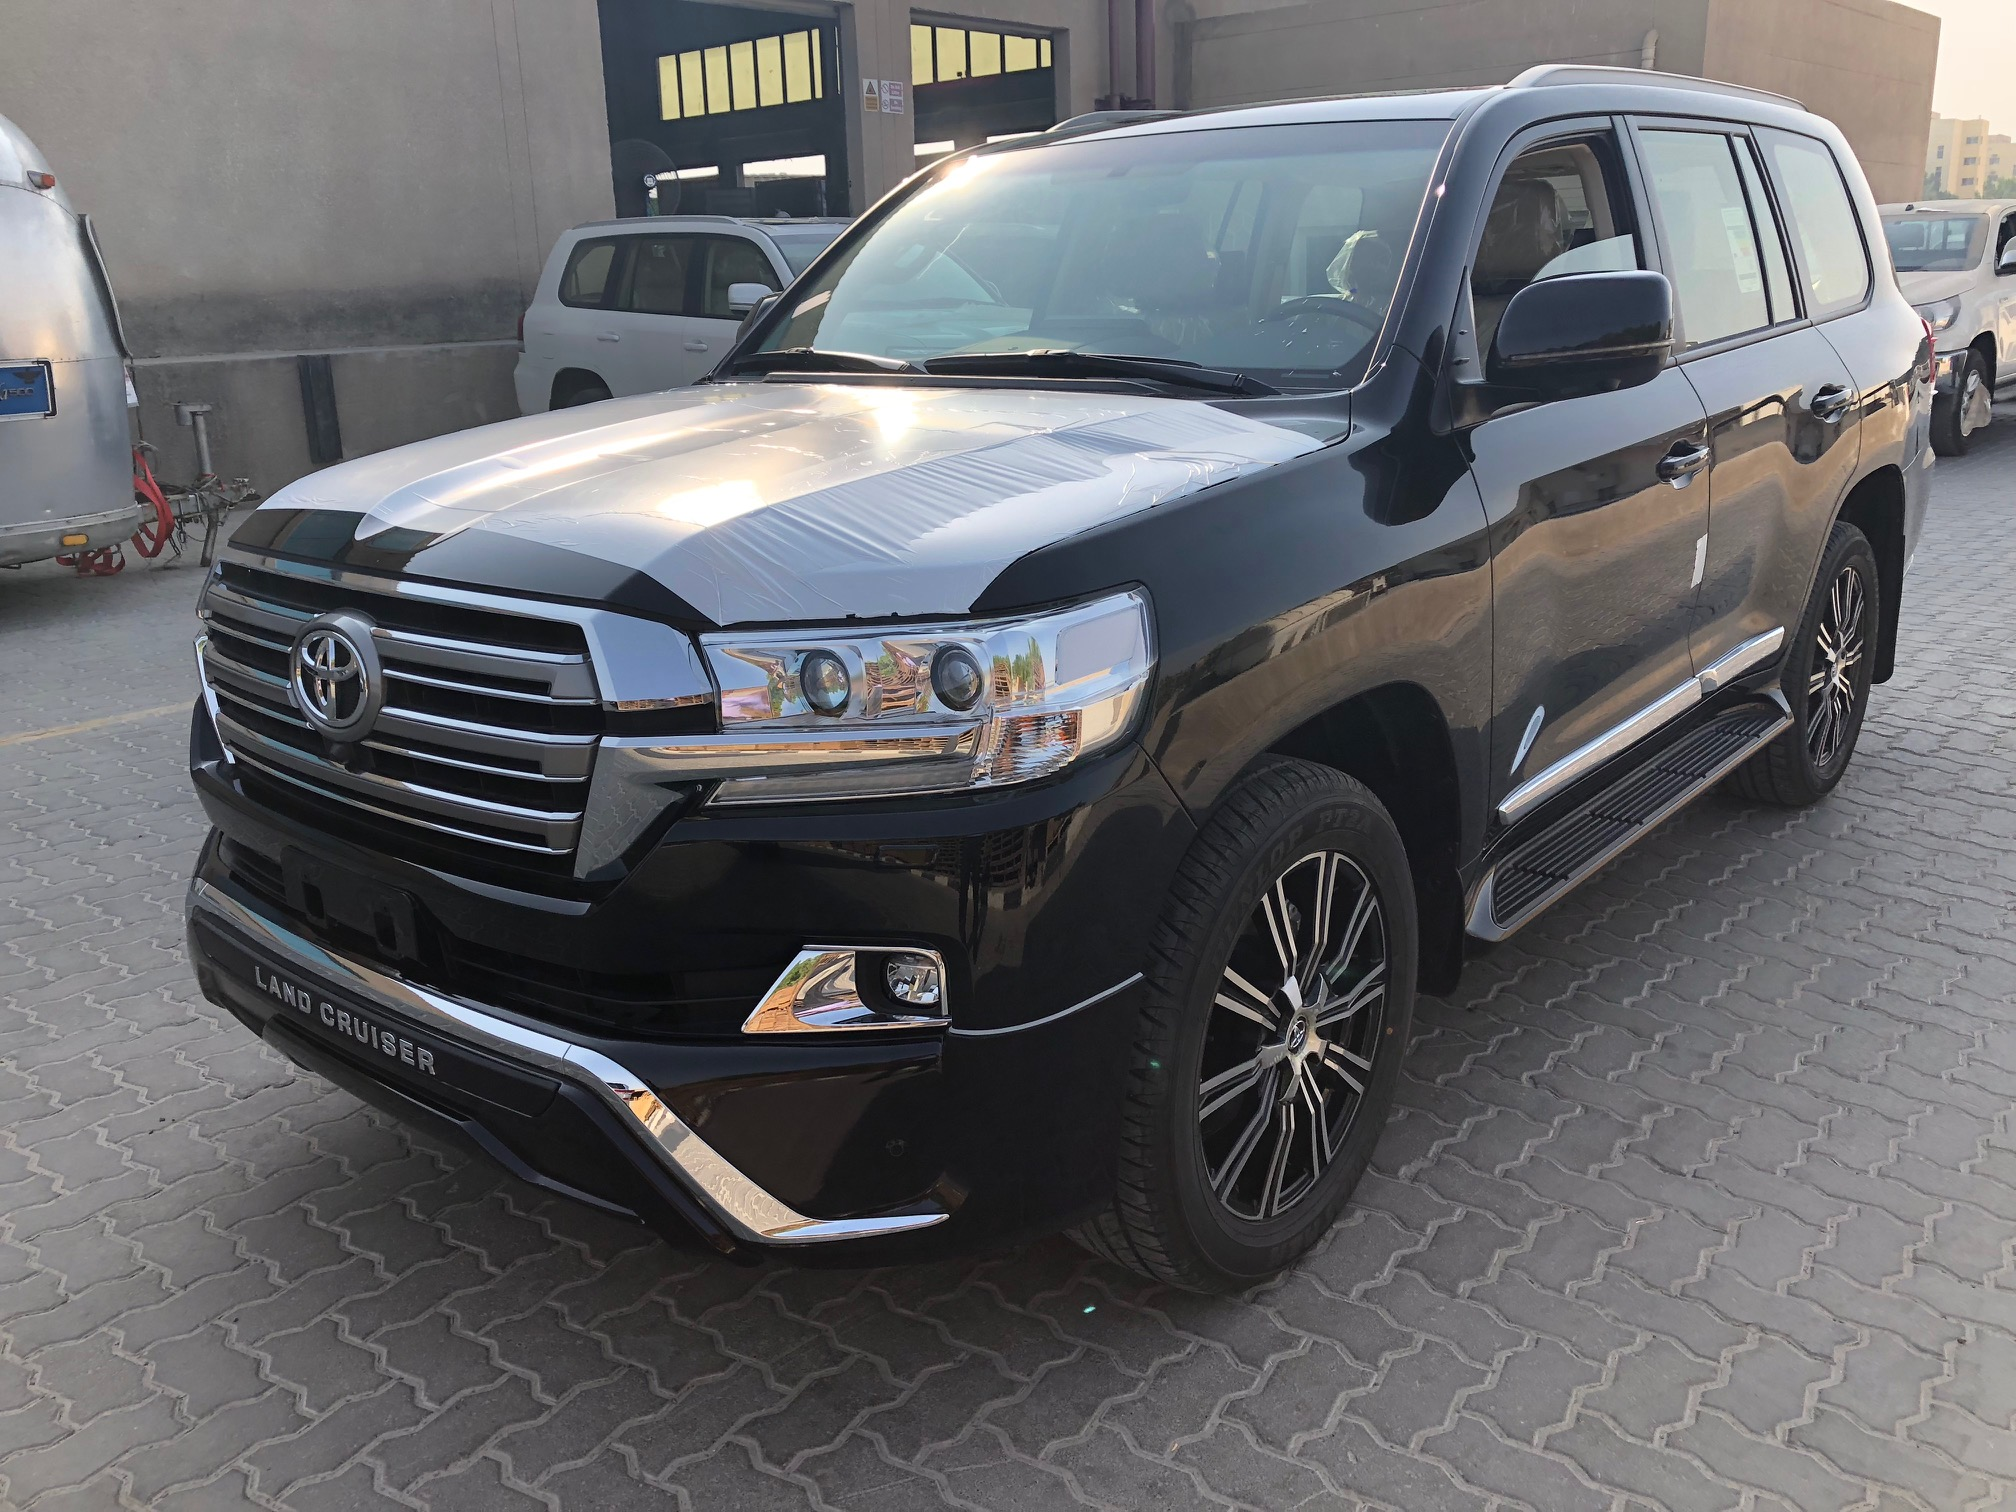 37 The 2019 Land Cruiser Specs